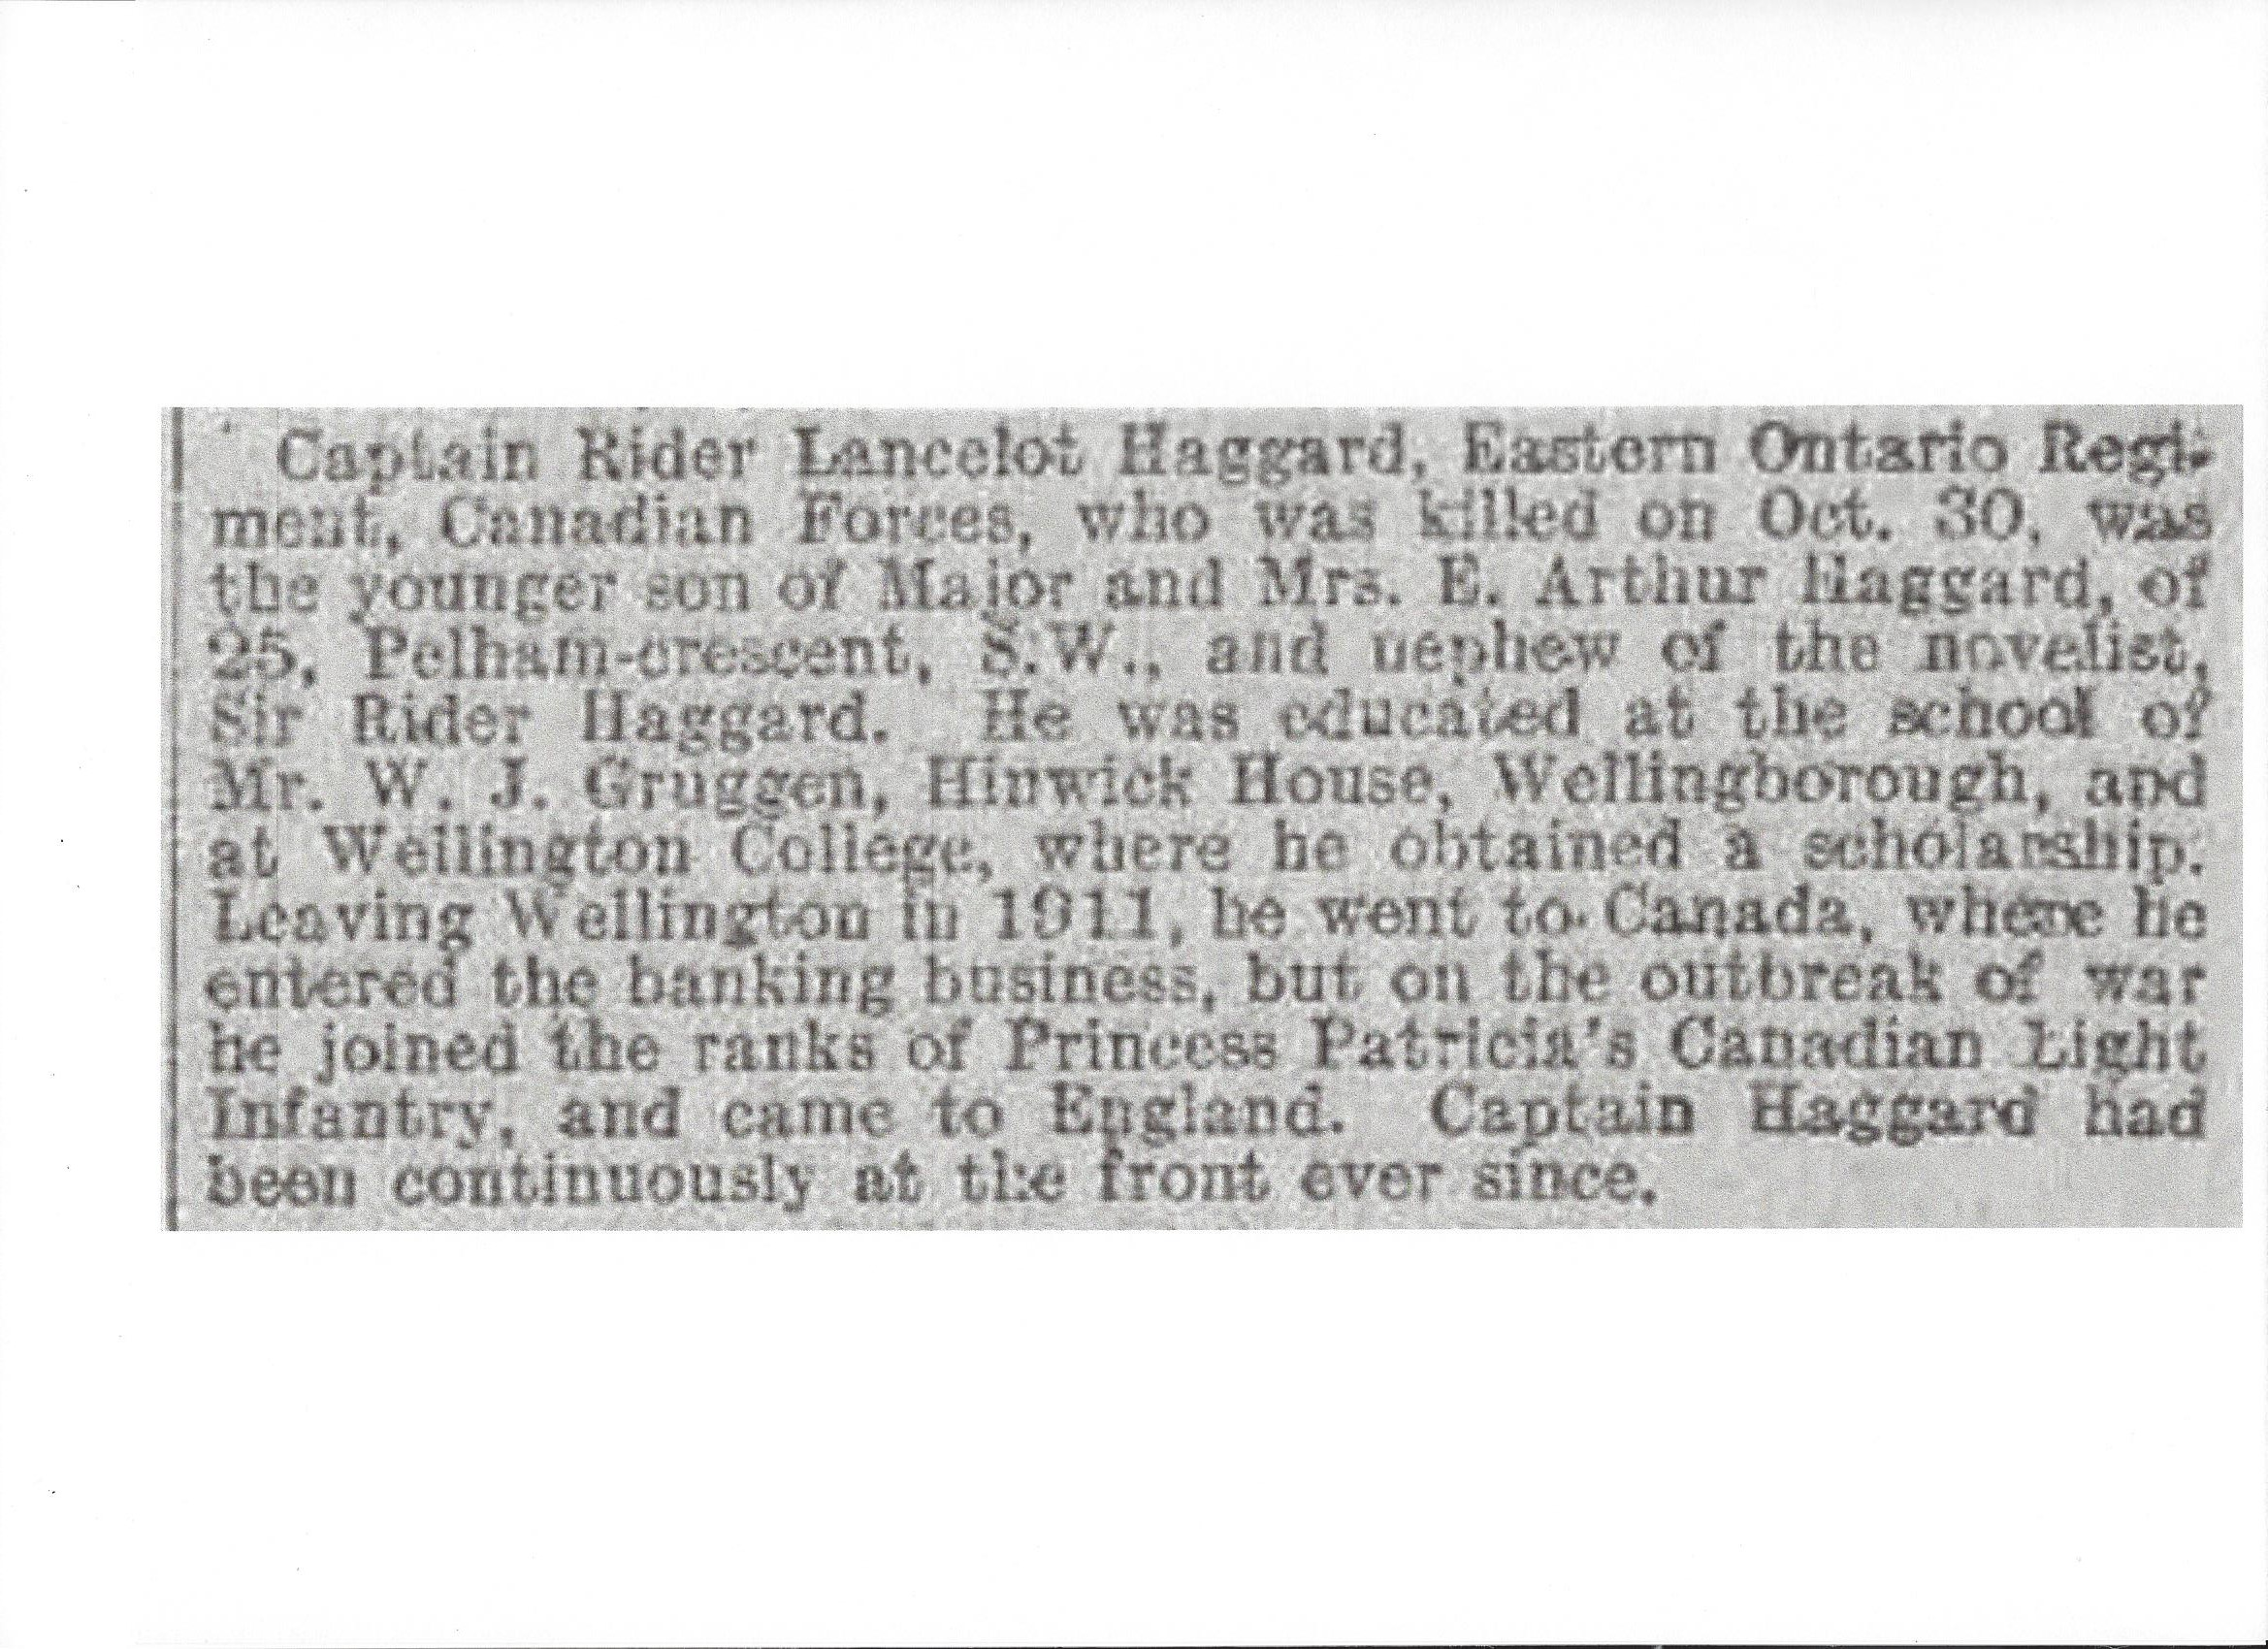 Newspaper clipping– Newspaper clipping from the Daily Telegraph of November 8, 1917. Image taken from web address of http://www.telegraph.co.uk/news/ww1-archive/12214929/Daily-Telegraph-November-8-1917.html